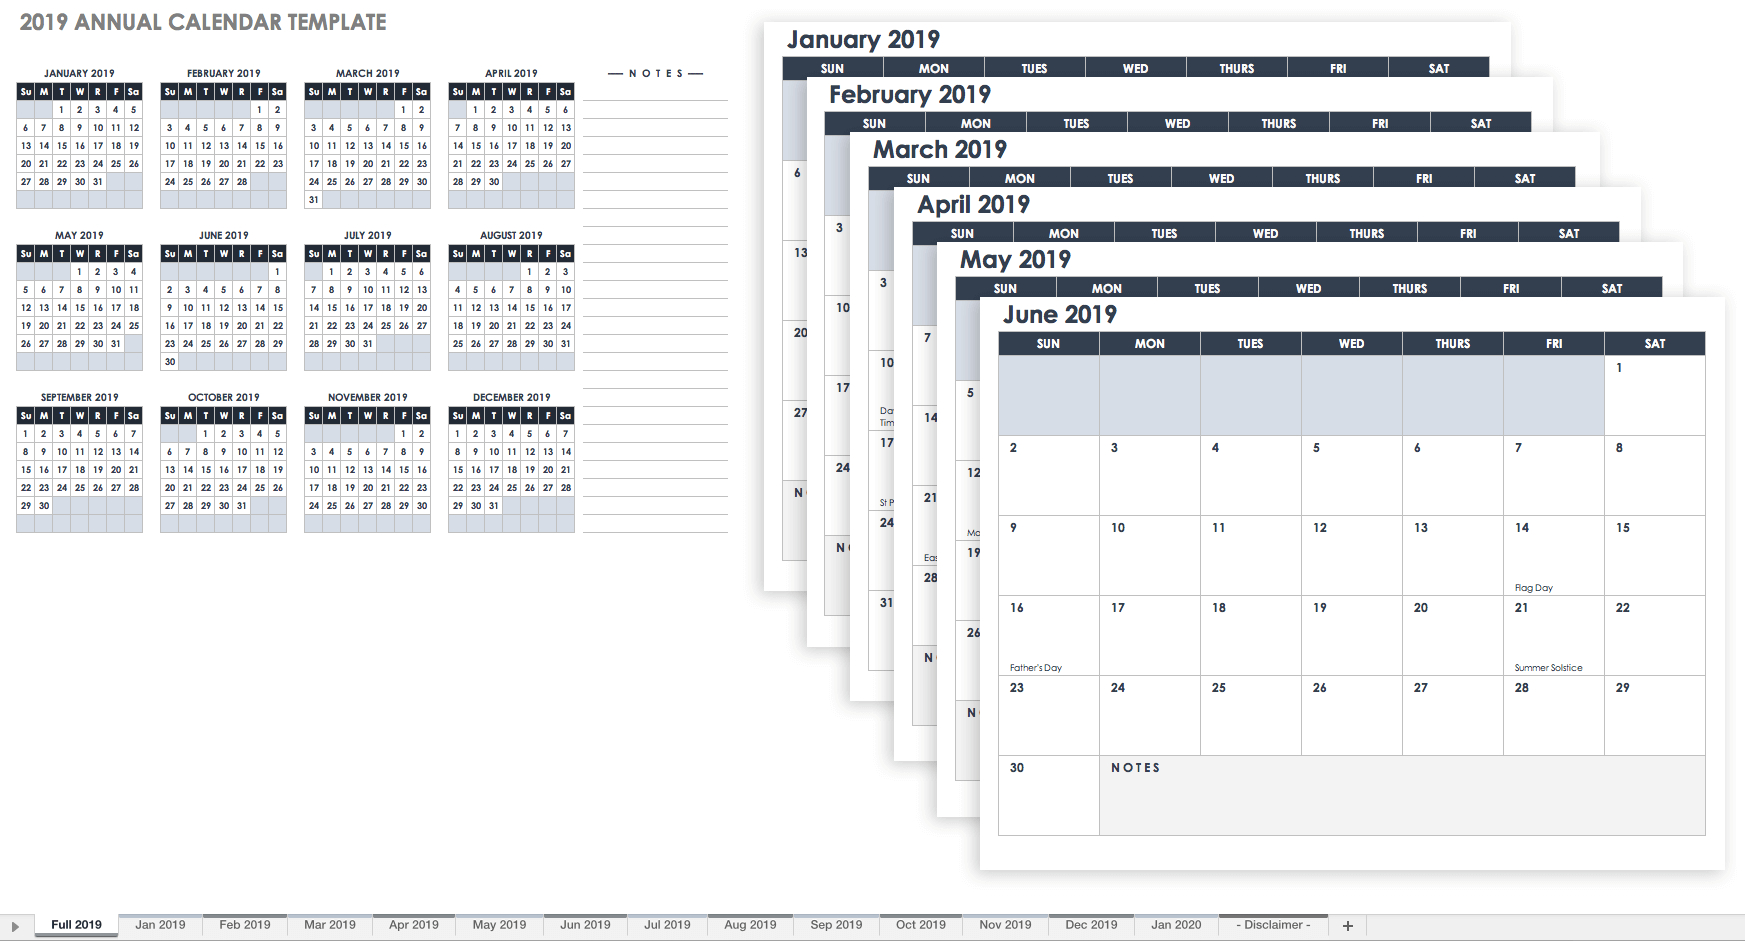 15 Free Monthly Calendar Templates | Smartsheet with regard to Free Printable Event Calendar Template